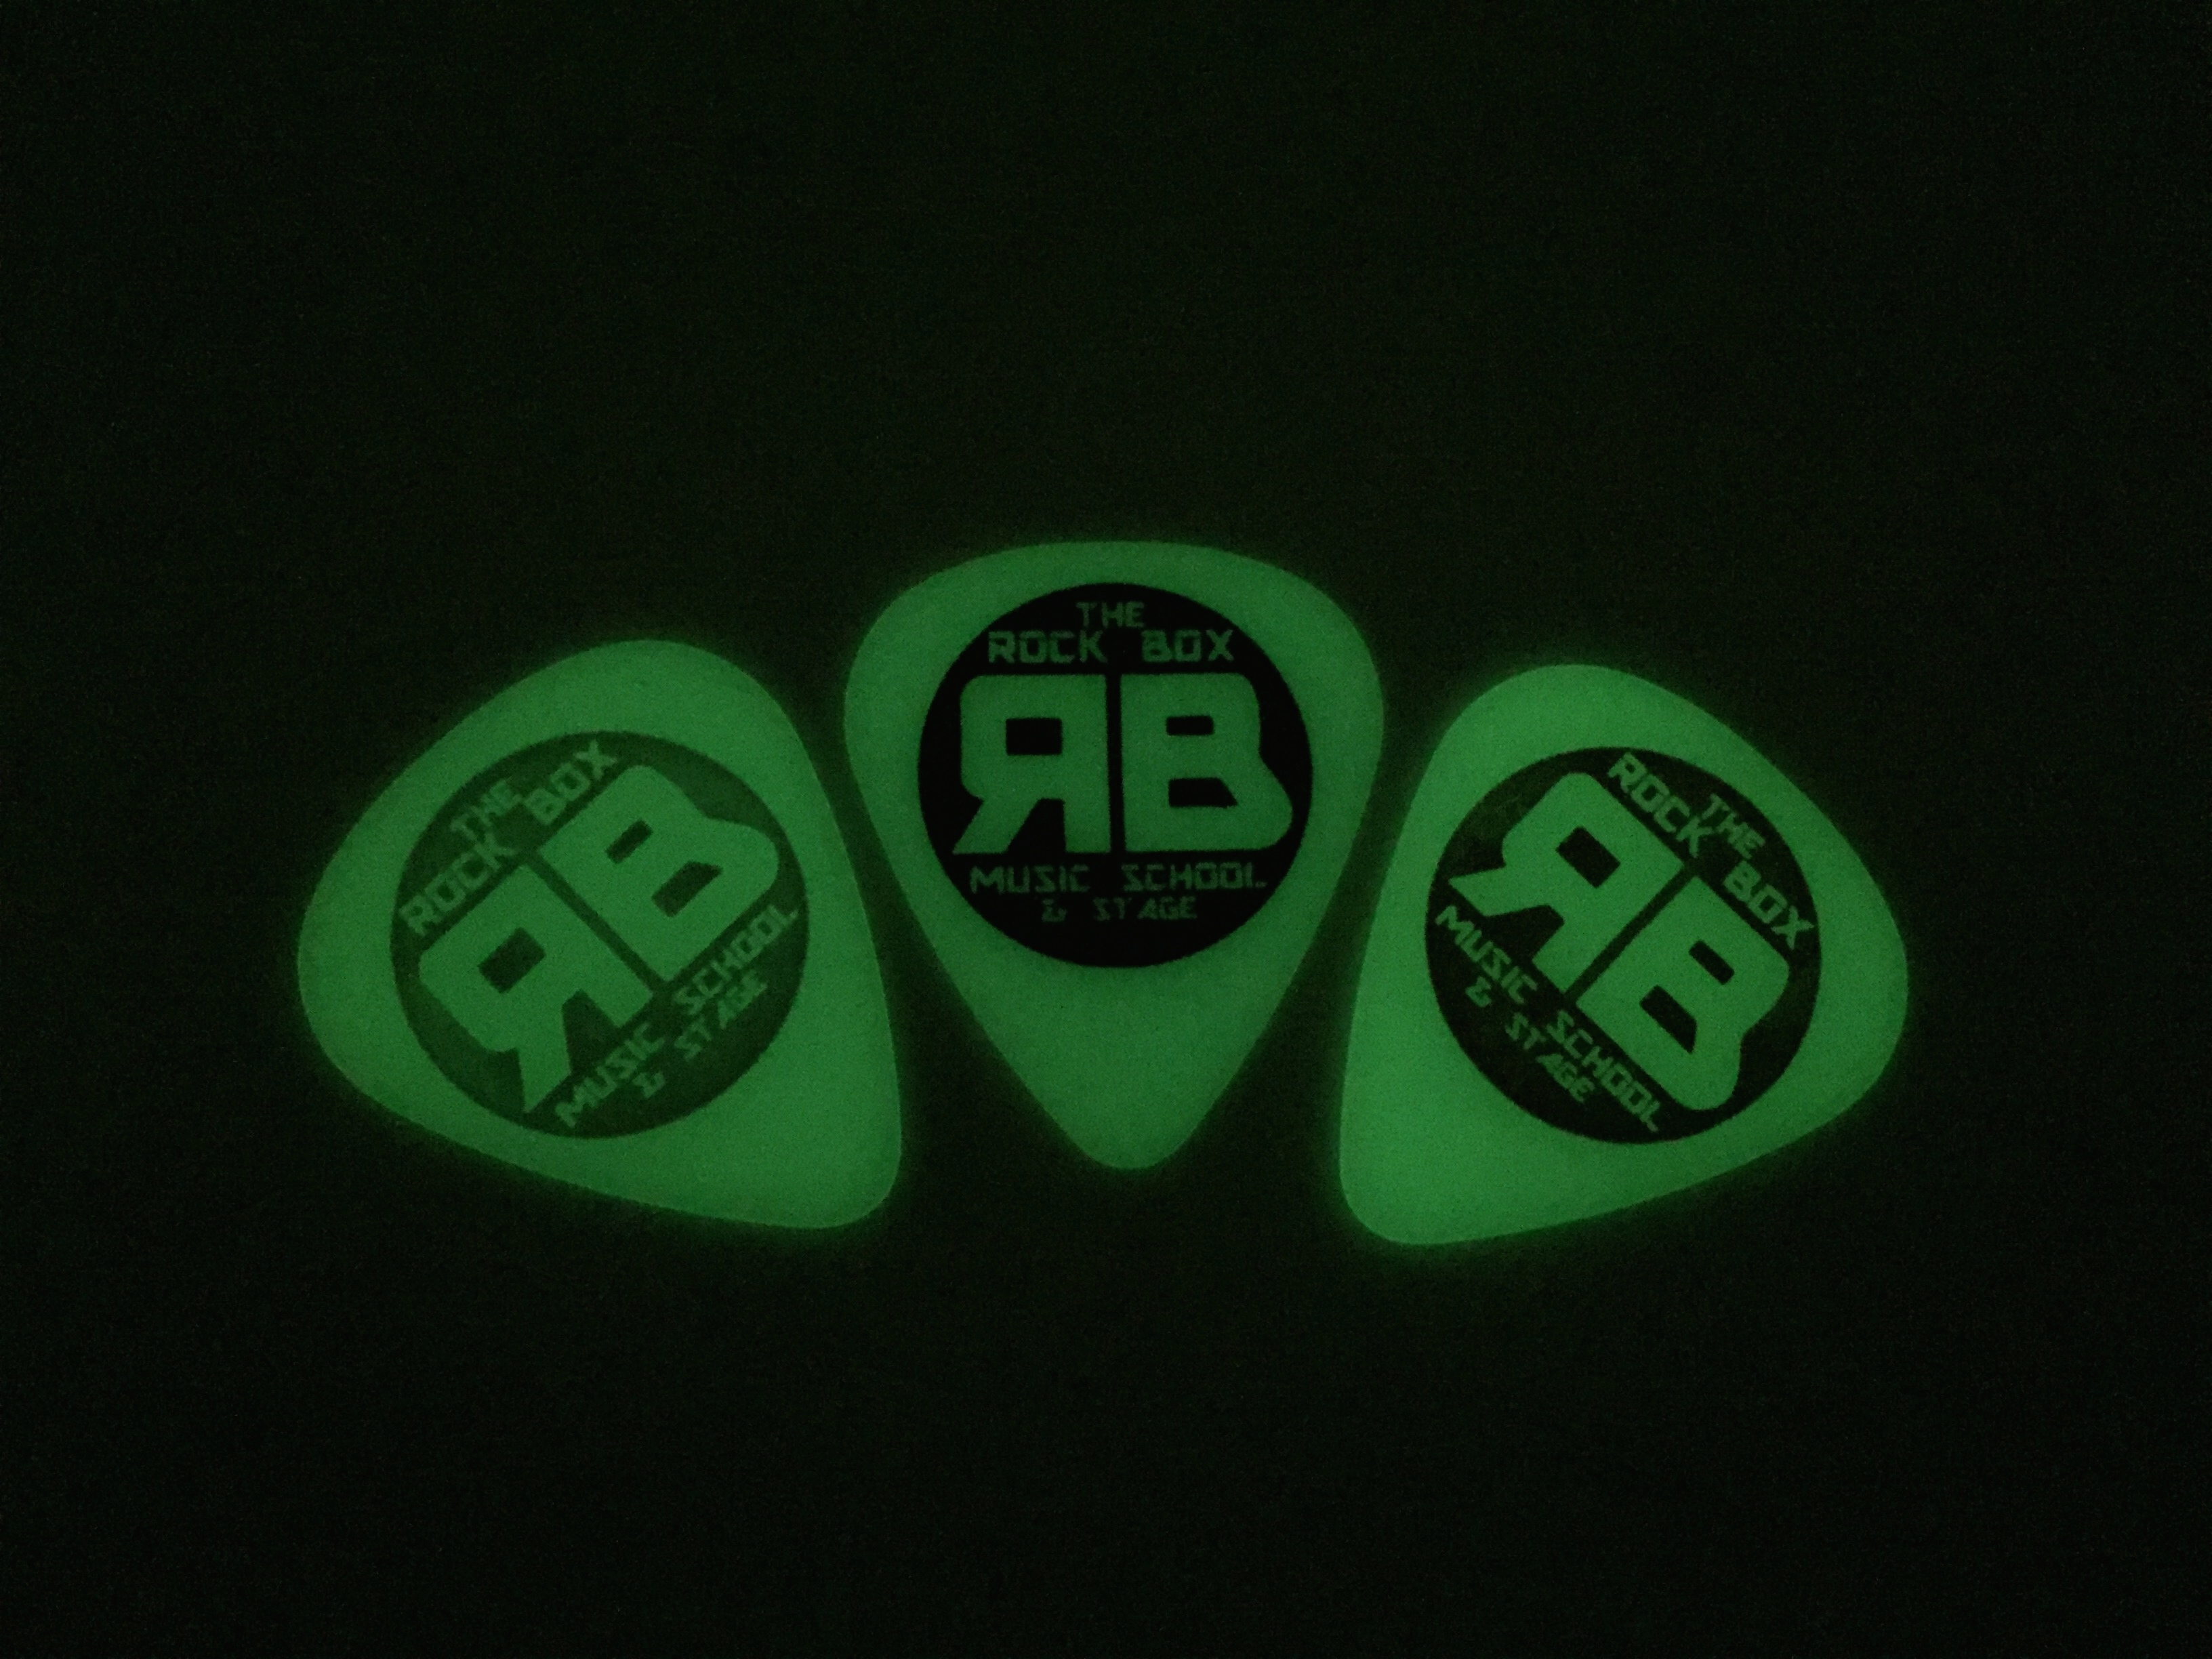 84d8d2e985e0 Glow-In-The-Dark Rock Box Guitar Picks – The Rock Box